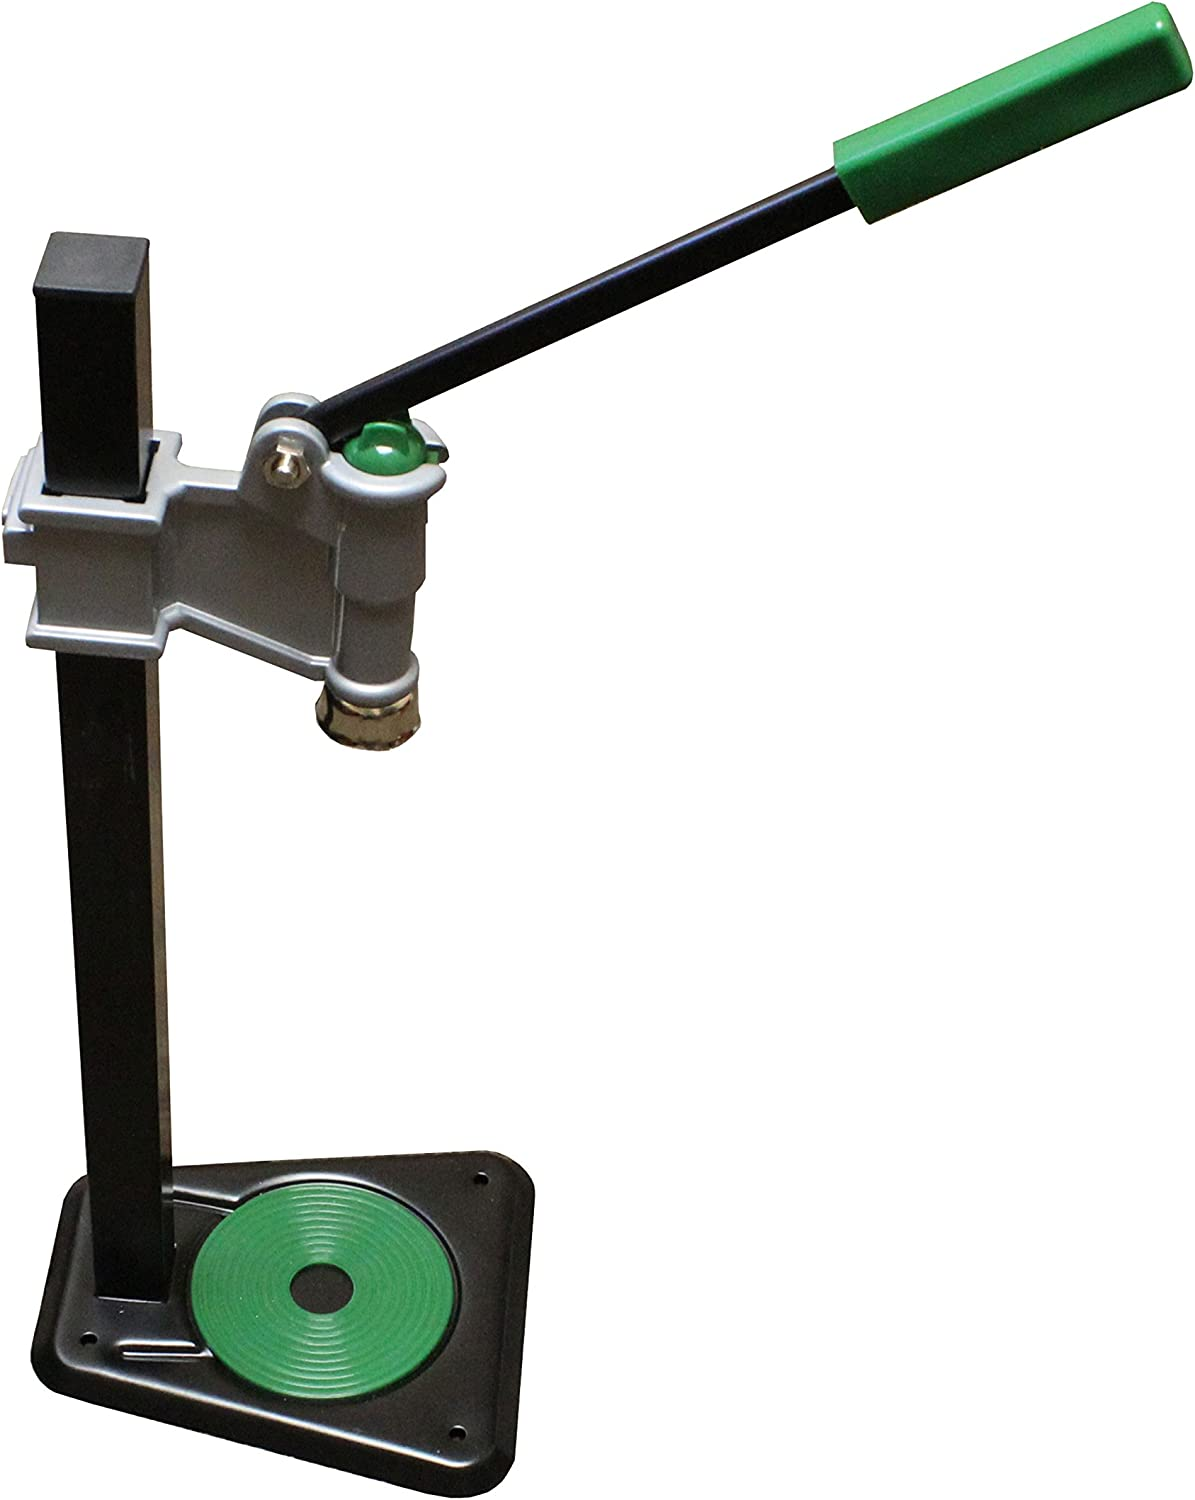 Professional Bench Beer Bottle Capper - Magnetic bell, Spring loaded